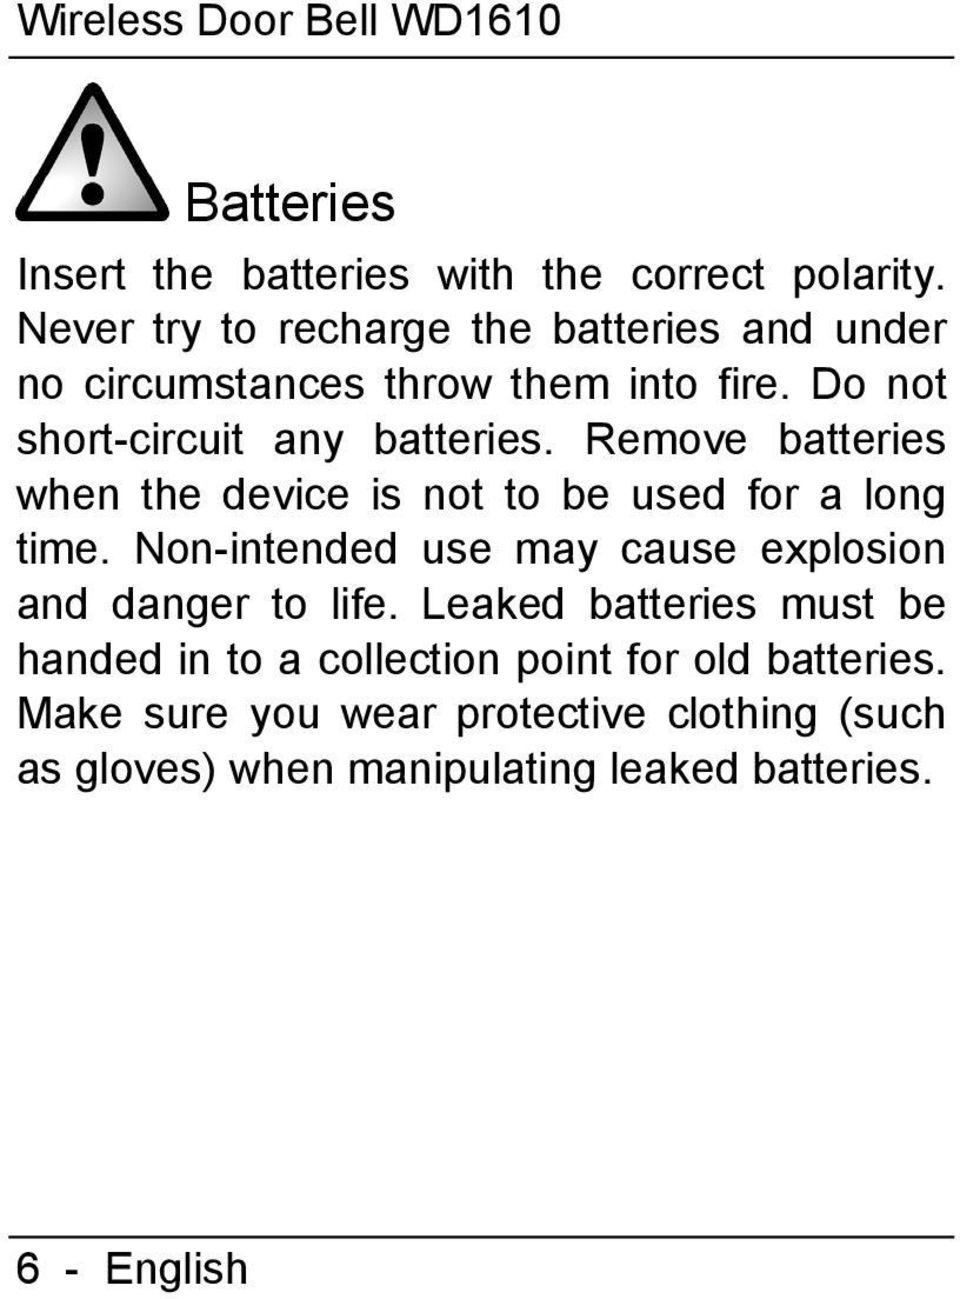 Remove batteries when the device is not to be used for a long time. Non-intended use may cause explosion and danger to life.